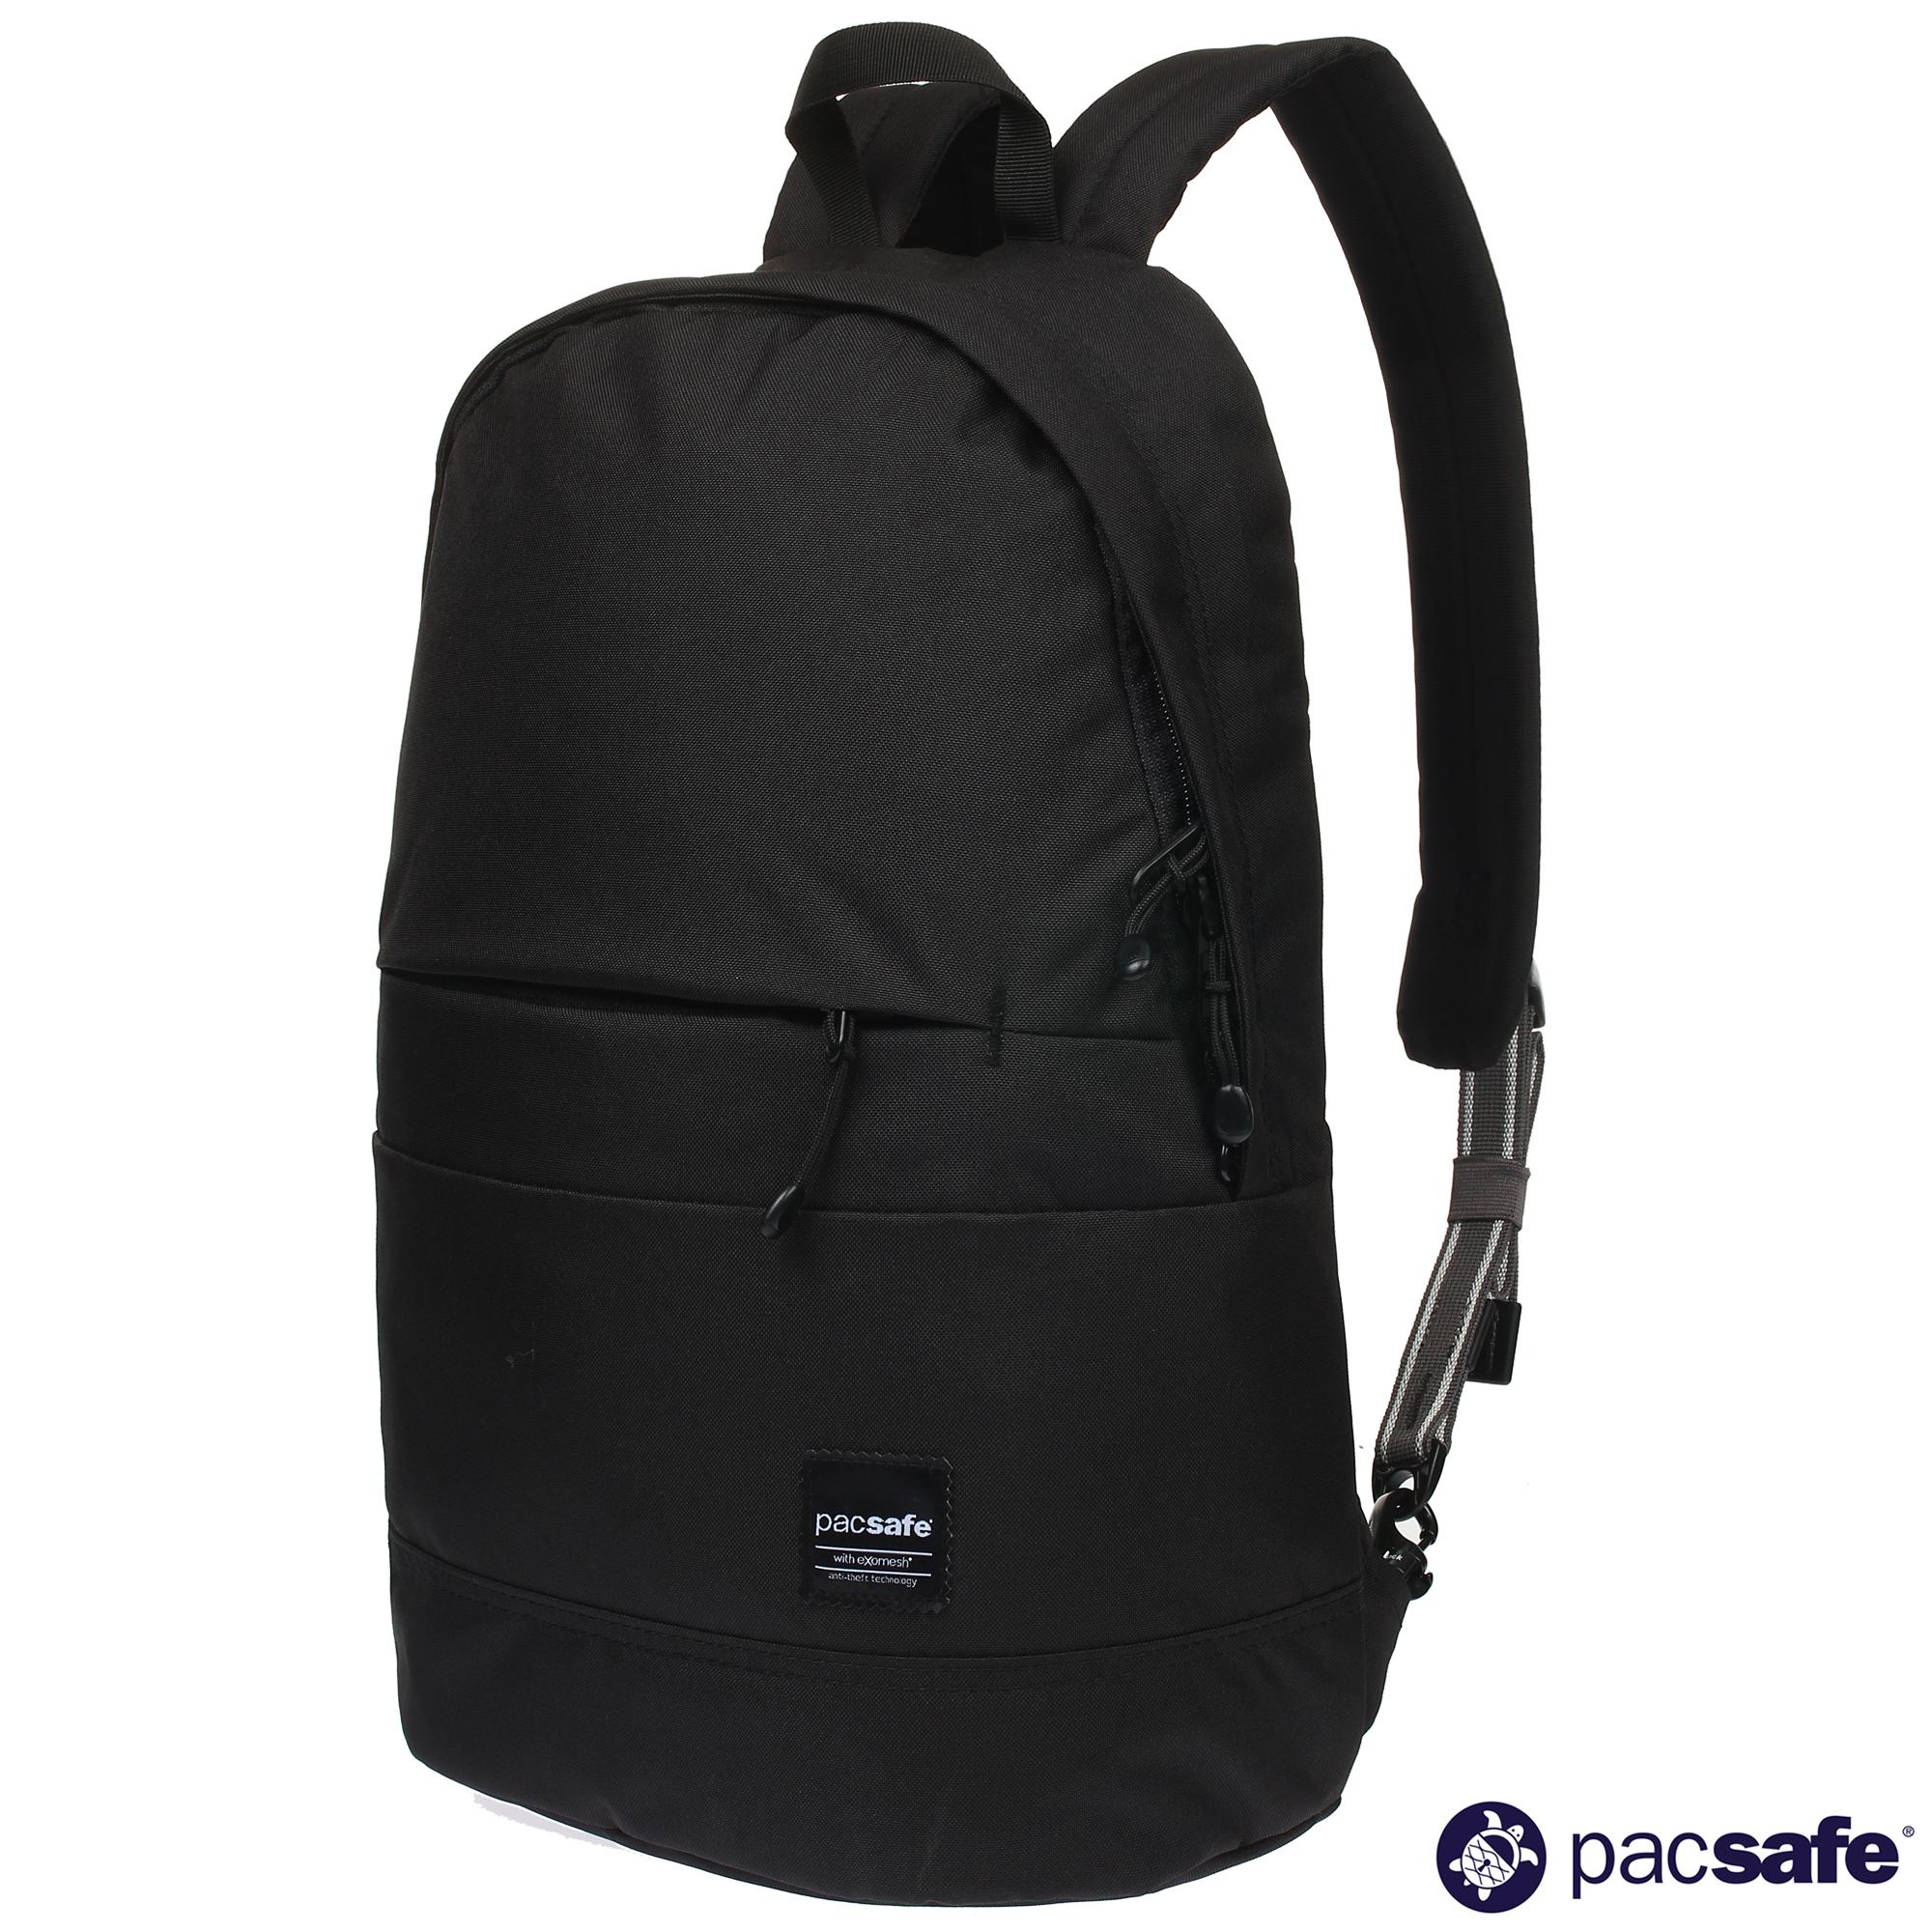 Pacsafe Slingsafe Lx300 Anti Theft Backpack 45230 Black